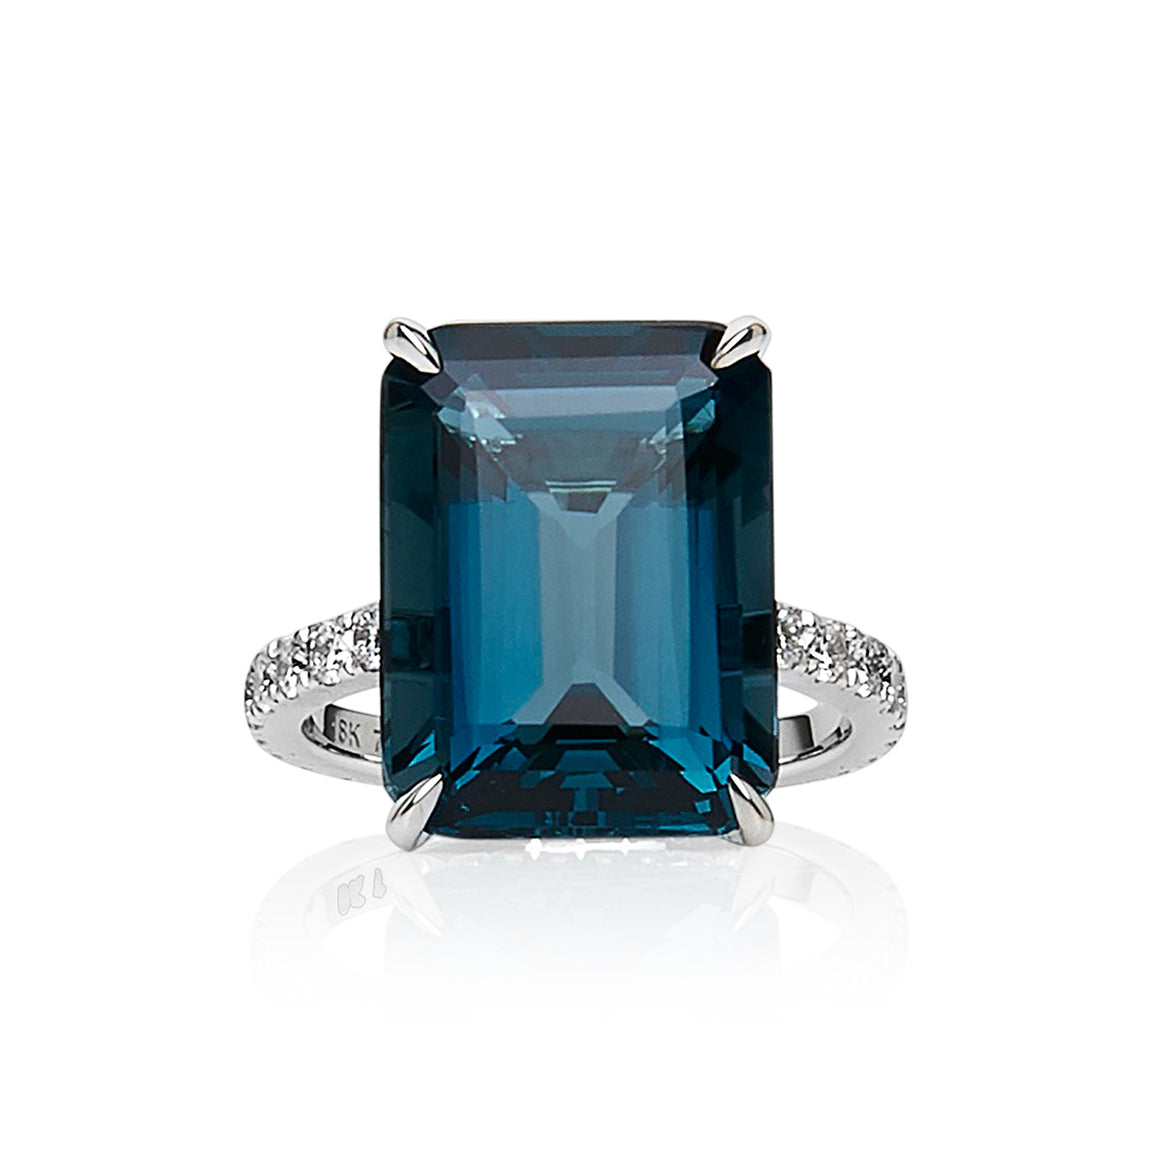 London Blue Topaz & Diamond 'Sarina' Ring - Gemma Stone Jewellery